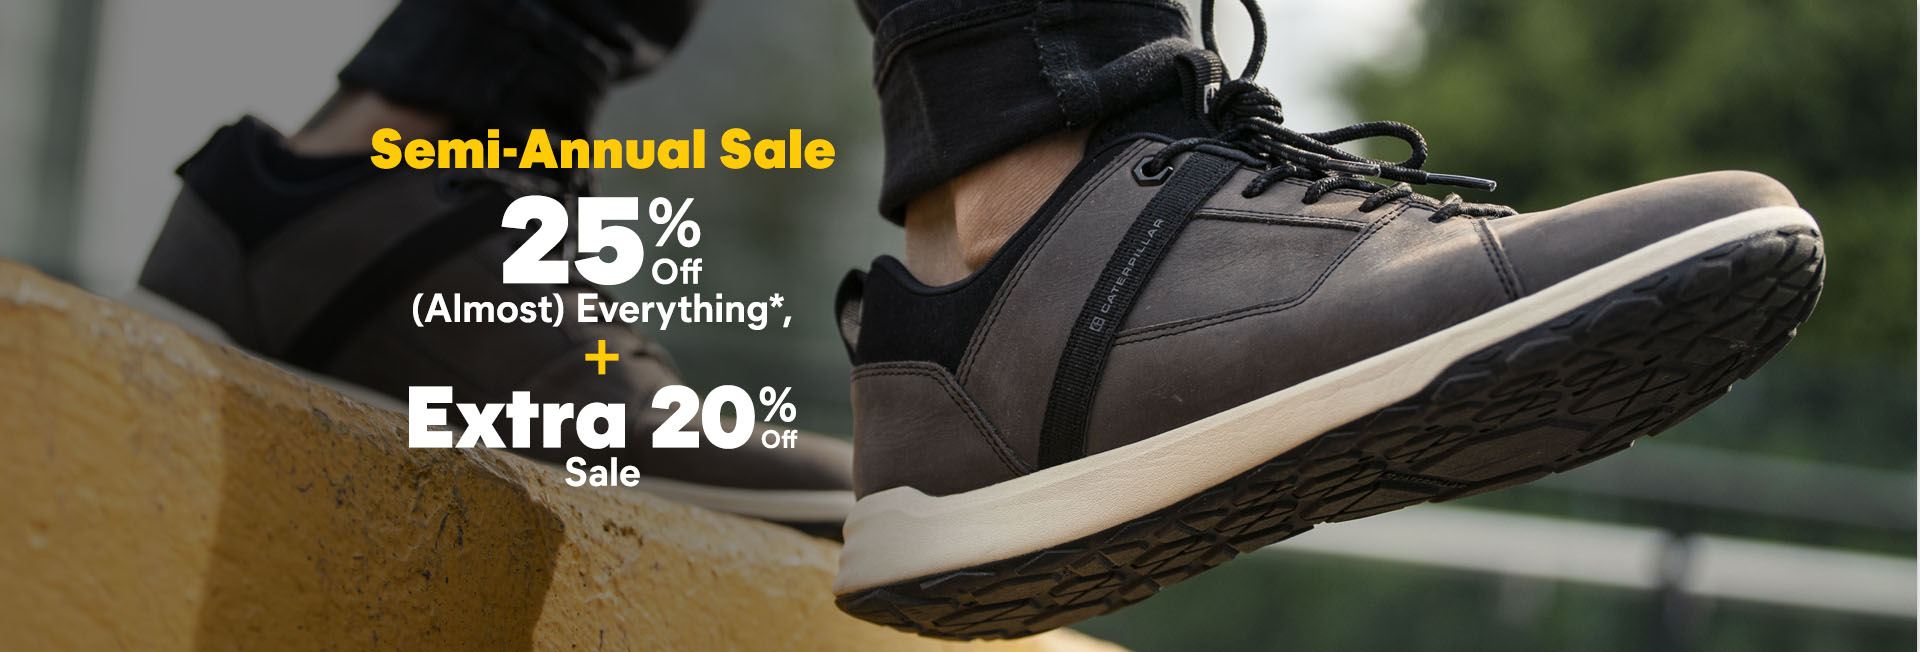 Semi Annual Sale 25% off (Almost everything) and Extra 20% off Sale.